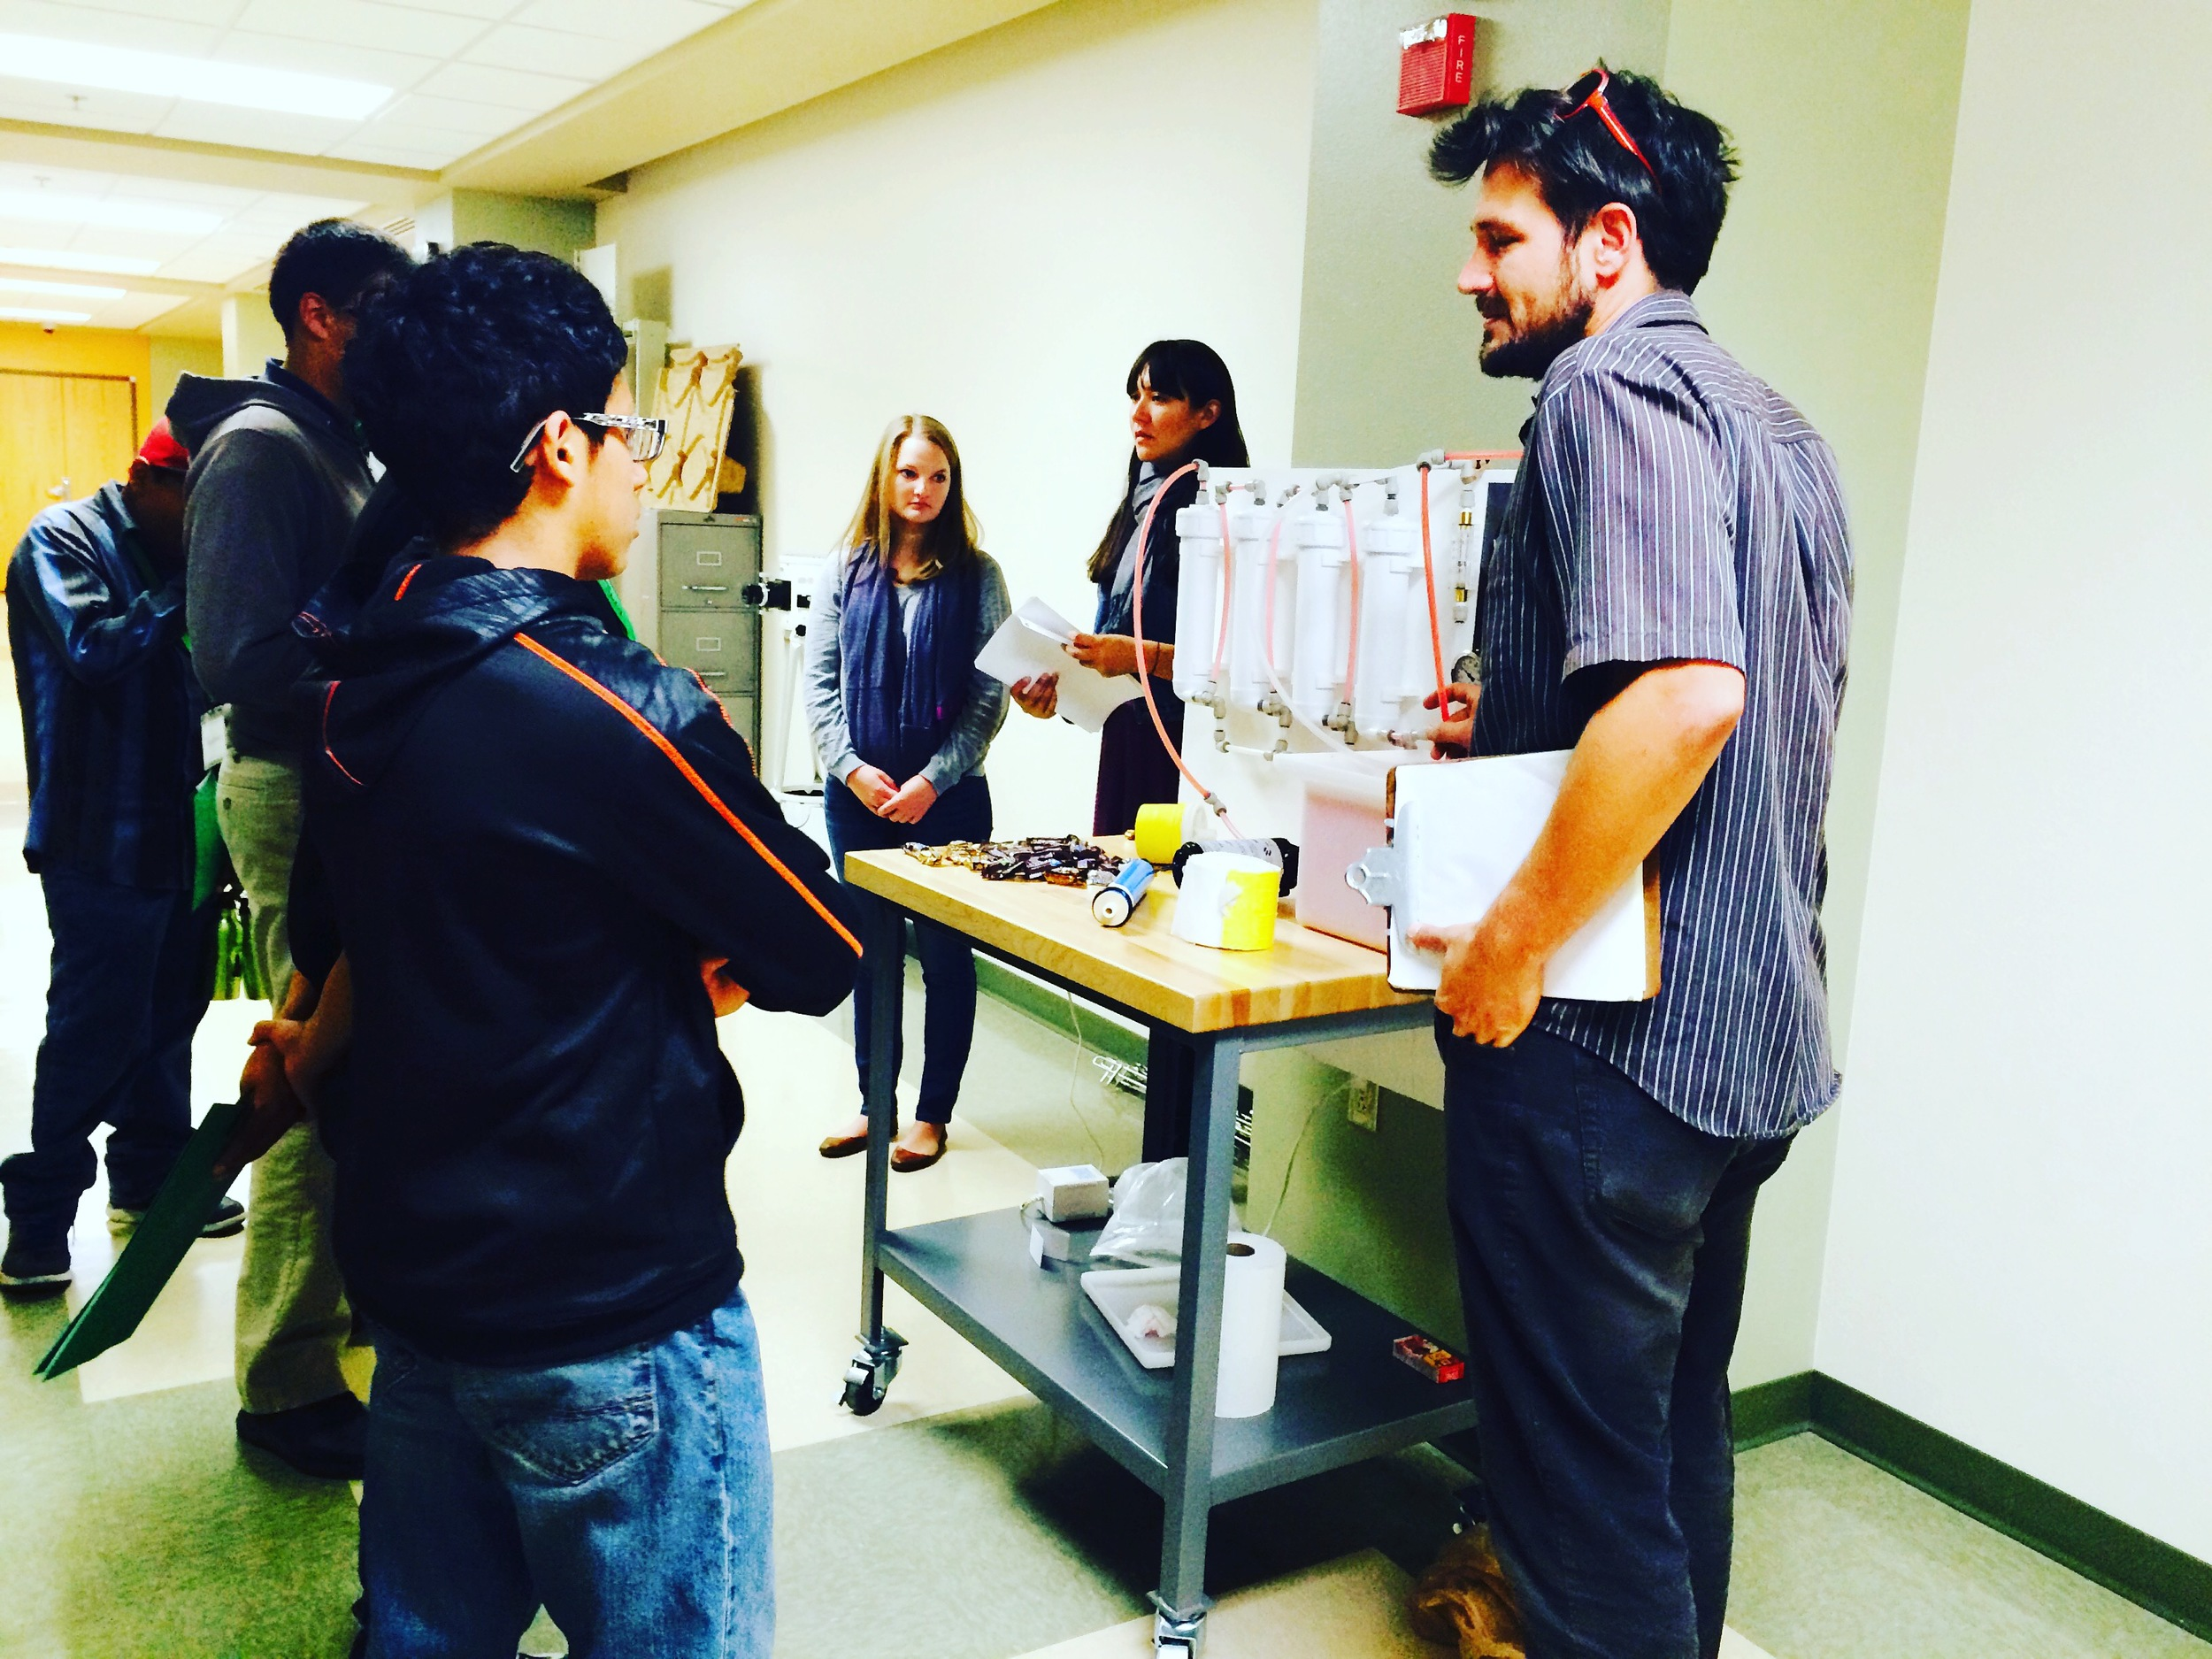 Civil Engineering students show Cuba students a water filtration system